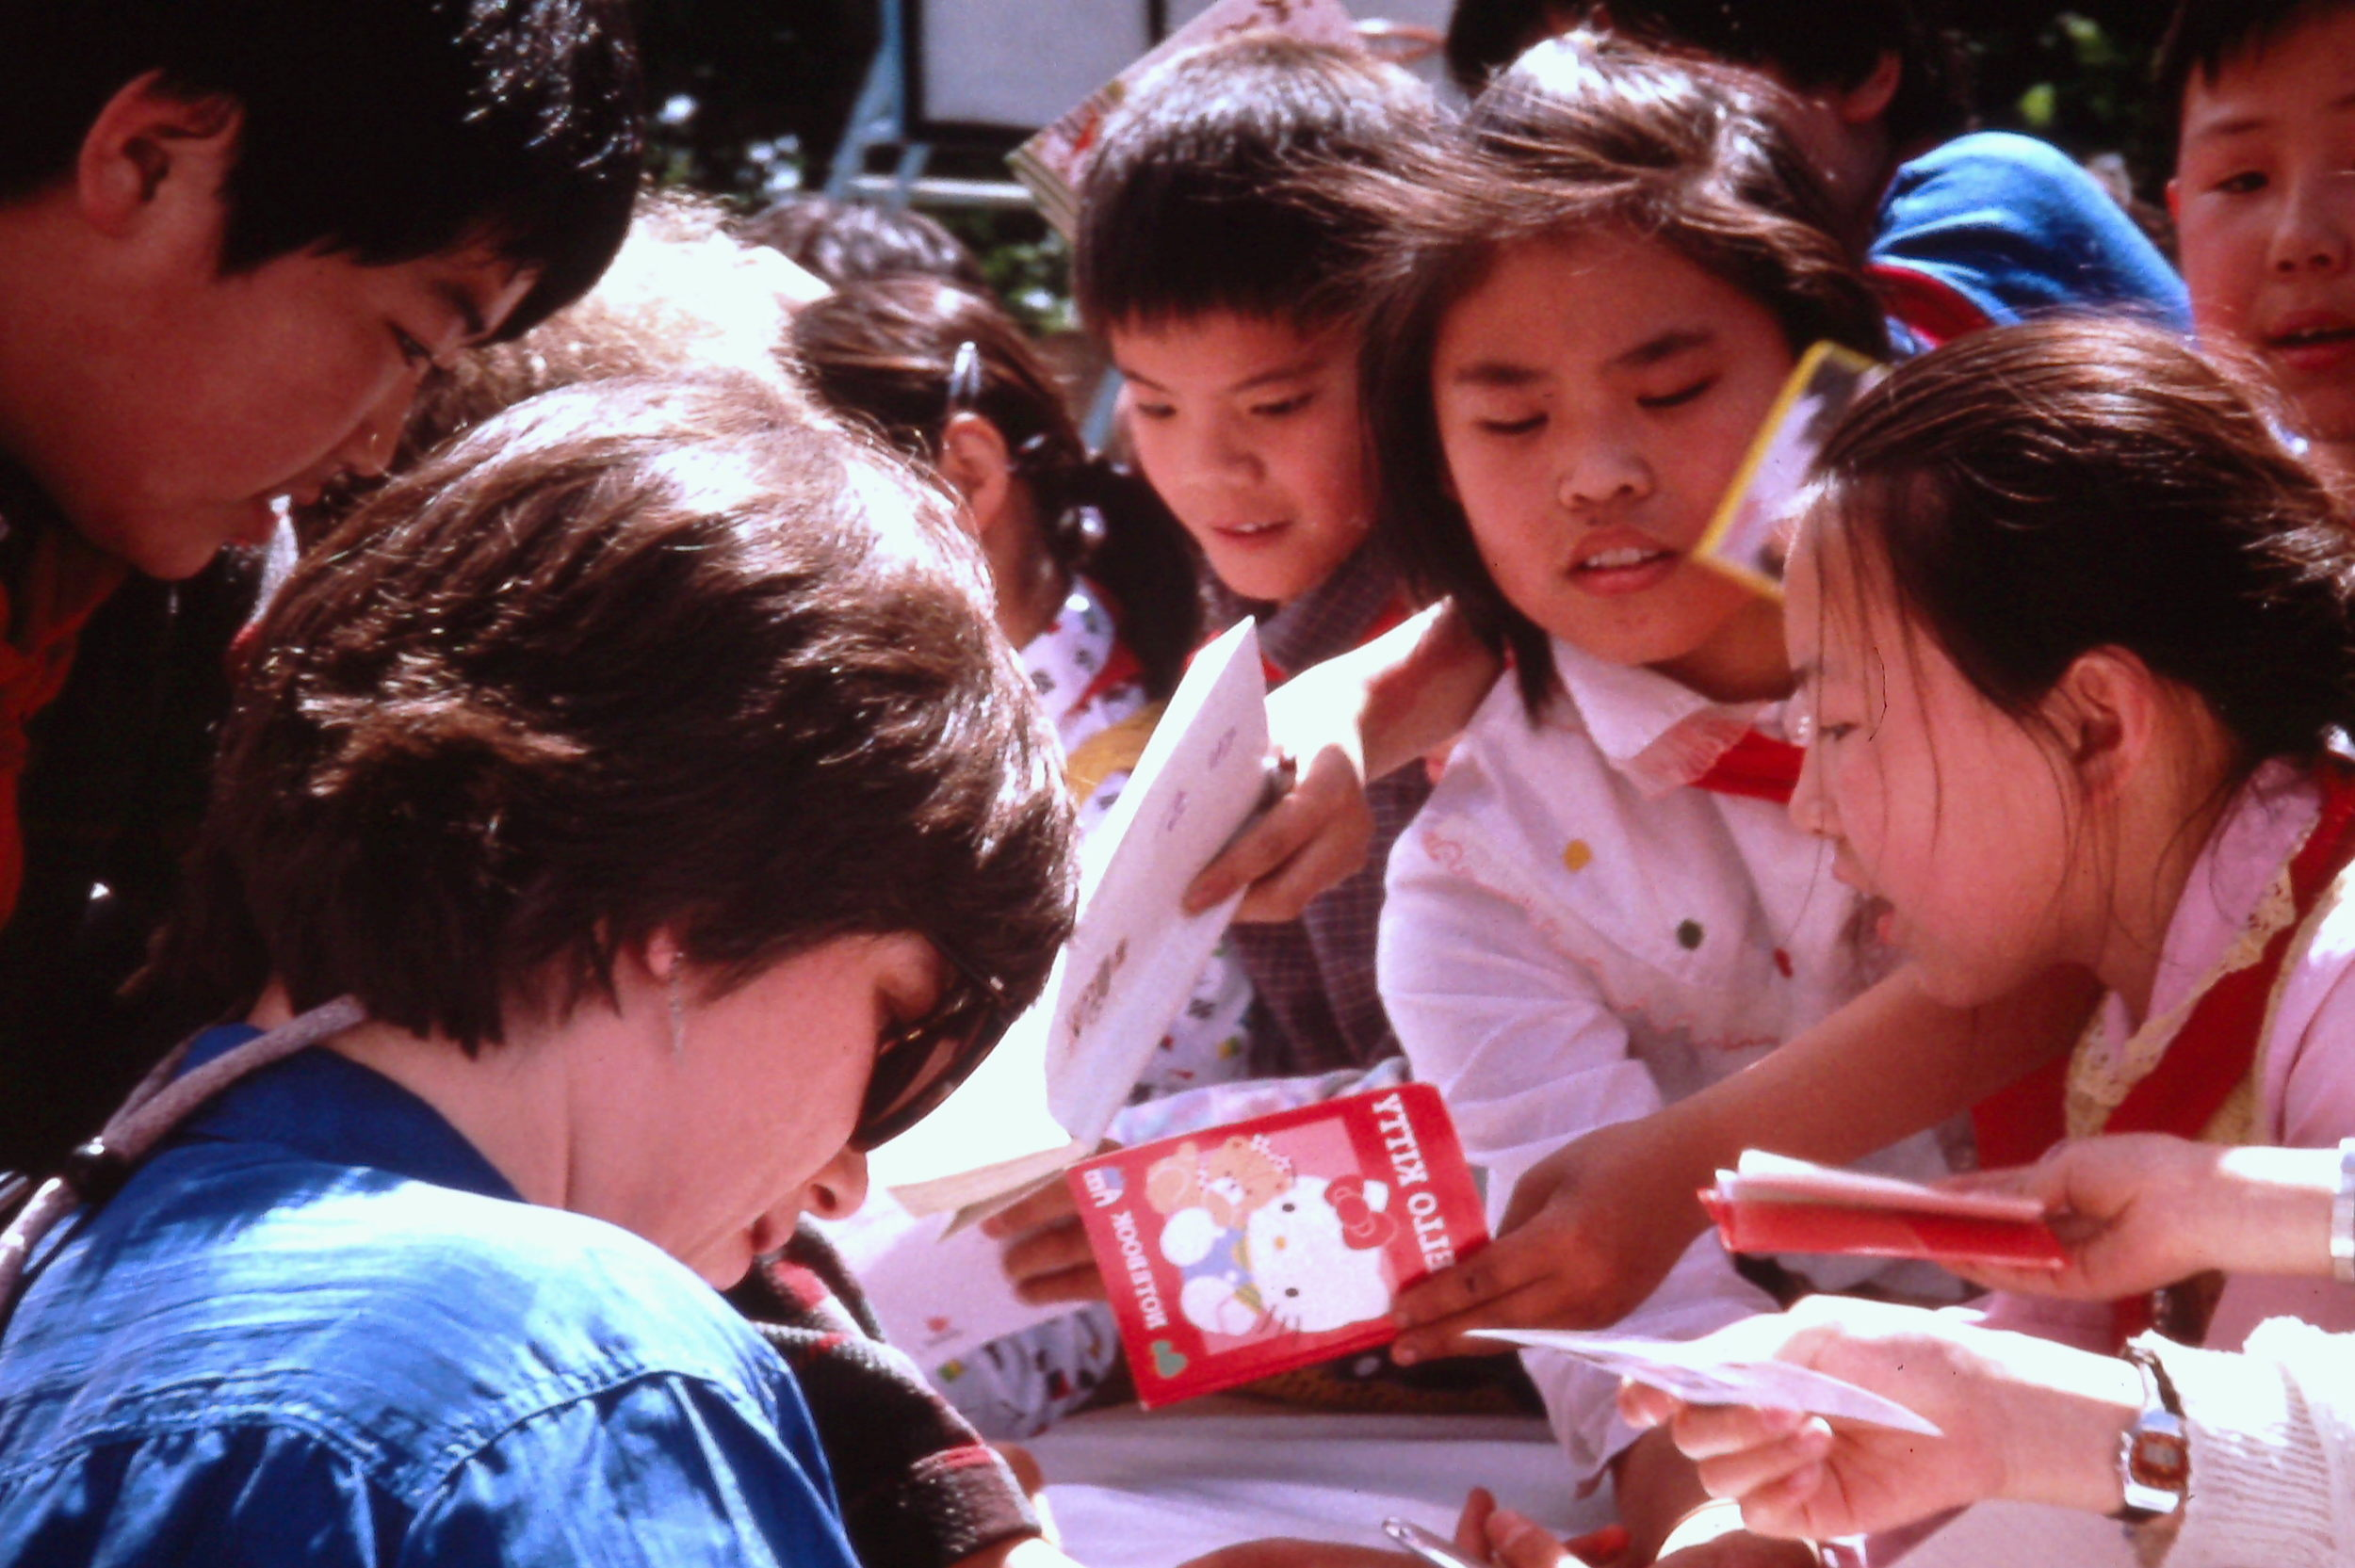 Students swarm the author for autographs, Beijing, China, May 1990. Photo: Cynthia Mueller